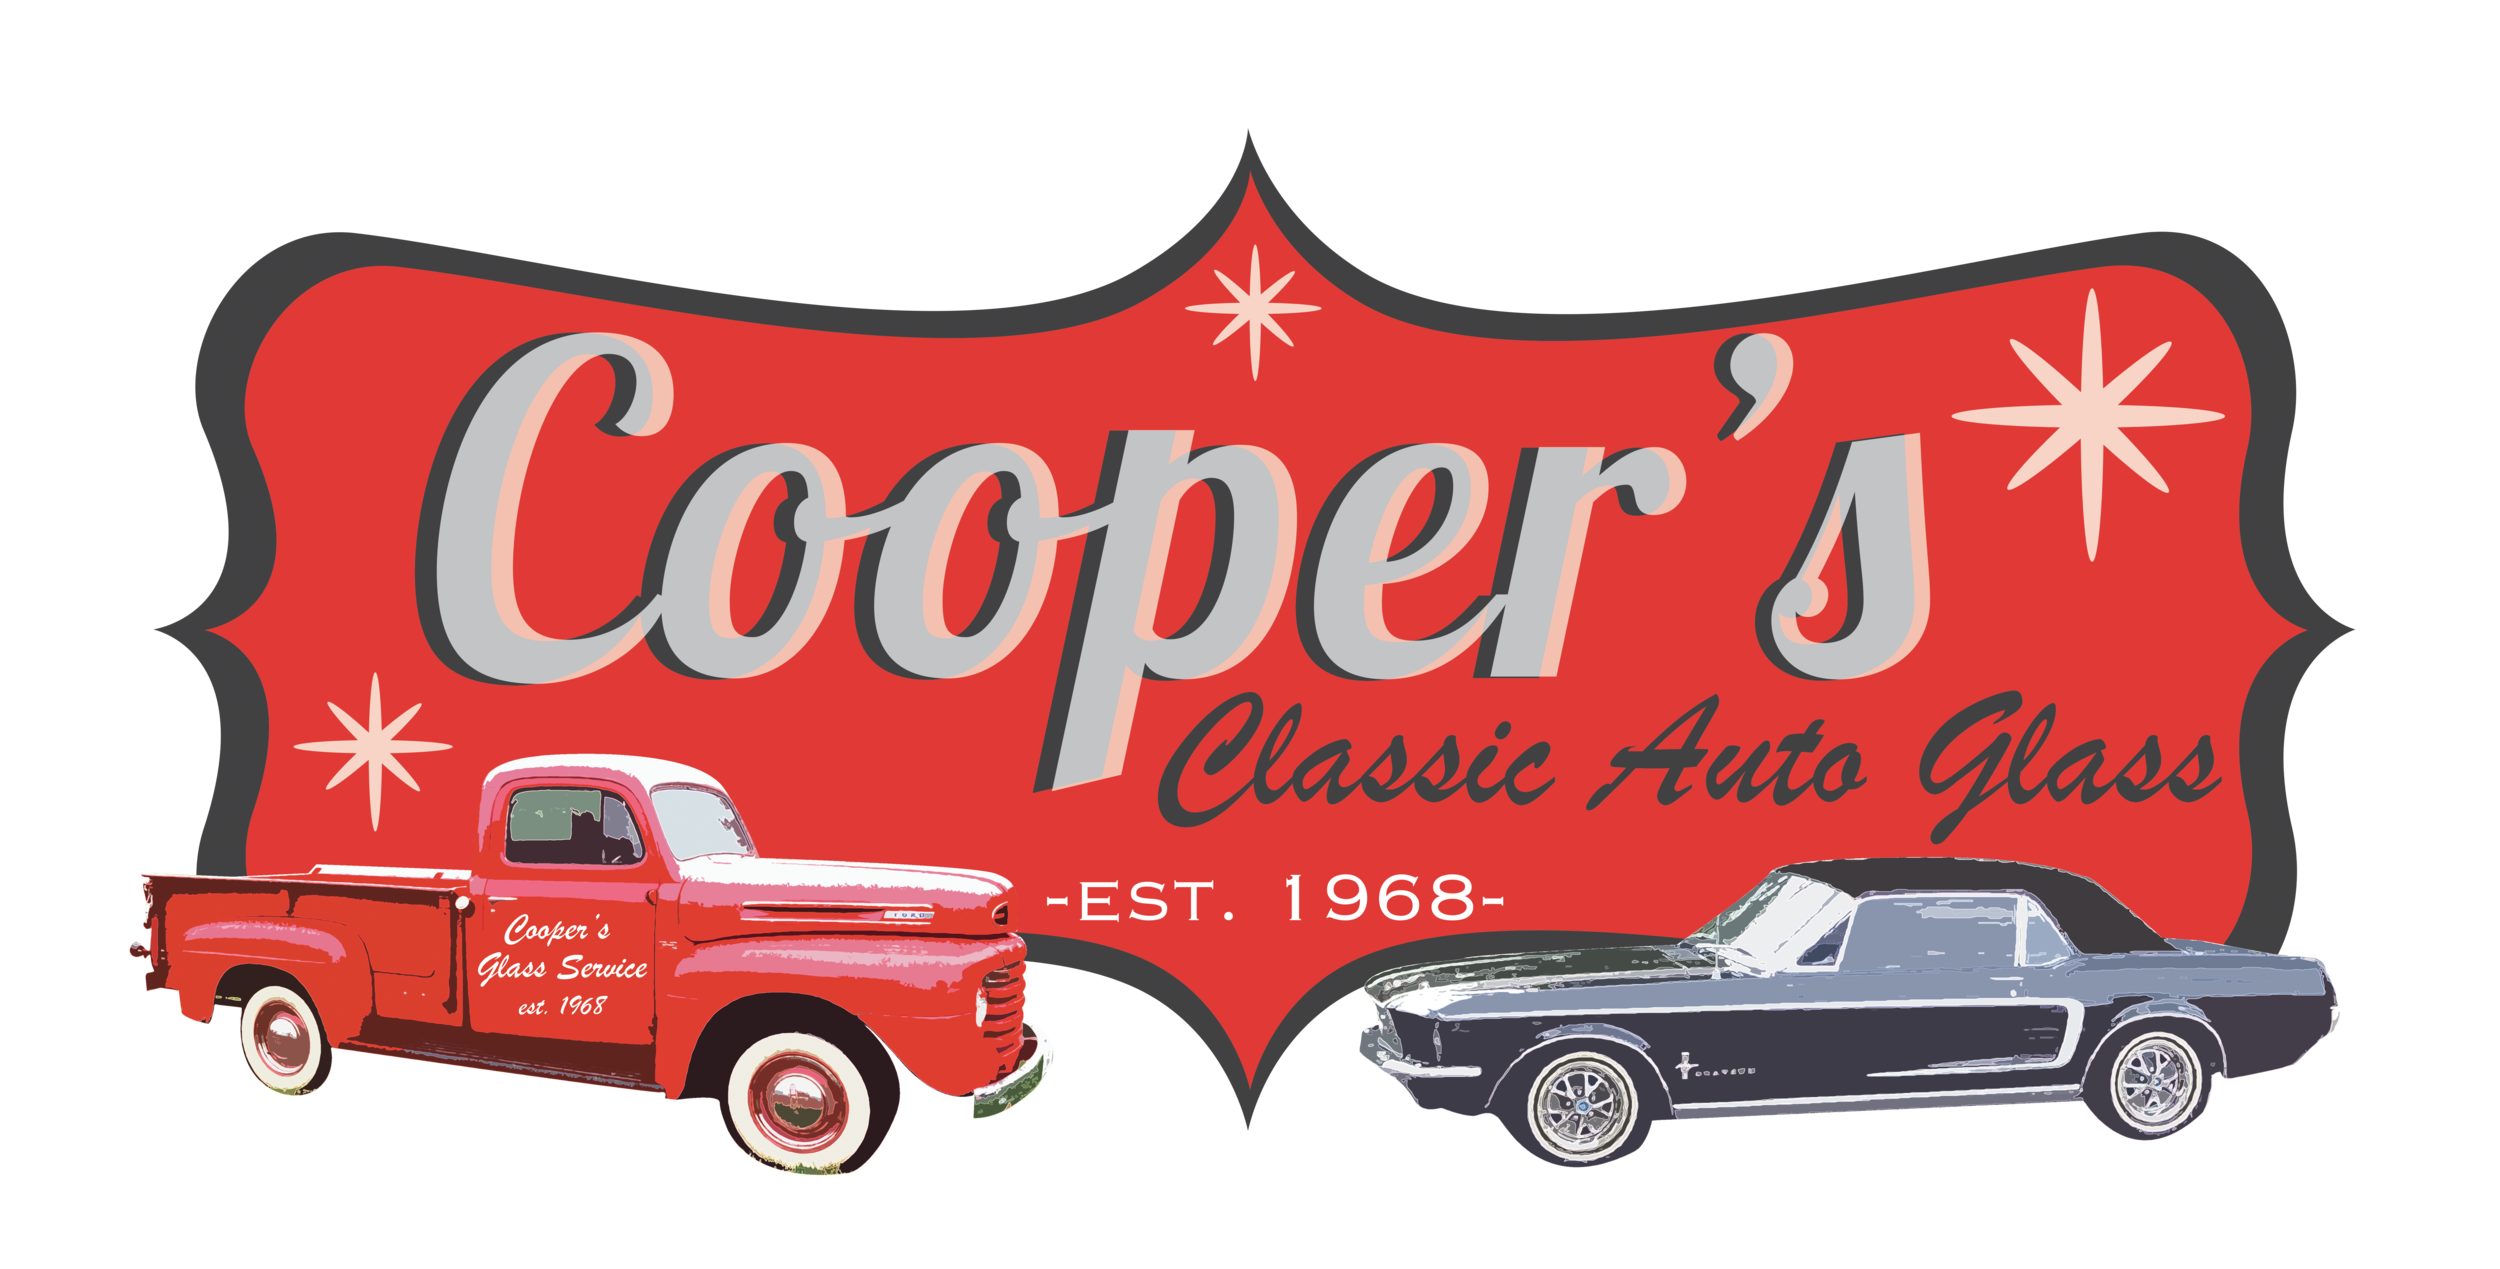 Coopers_Classic_Auto_Glass_design_FINAL.png